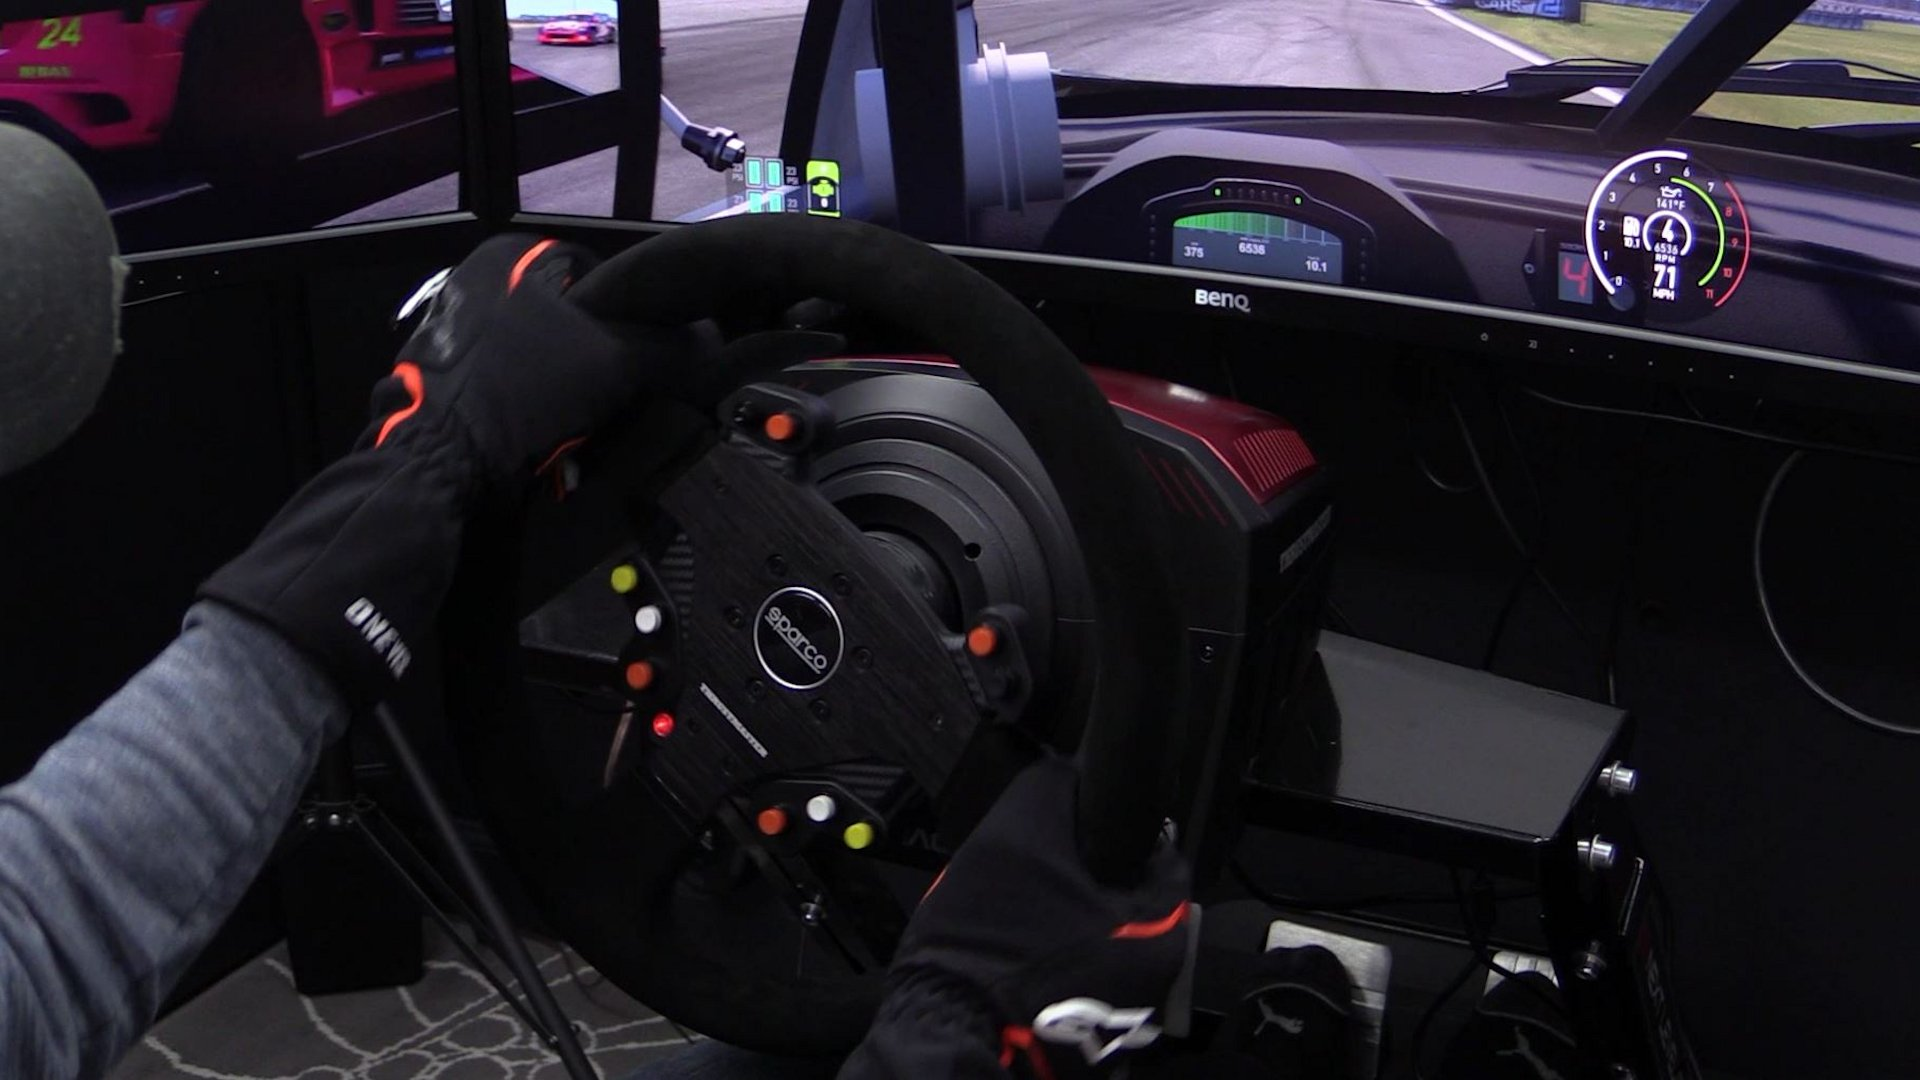 Thrustmaster Sparco R383 Mod Wheel Review